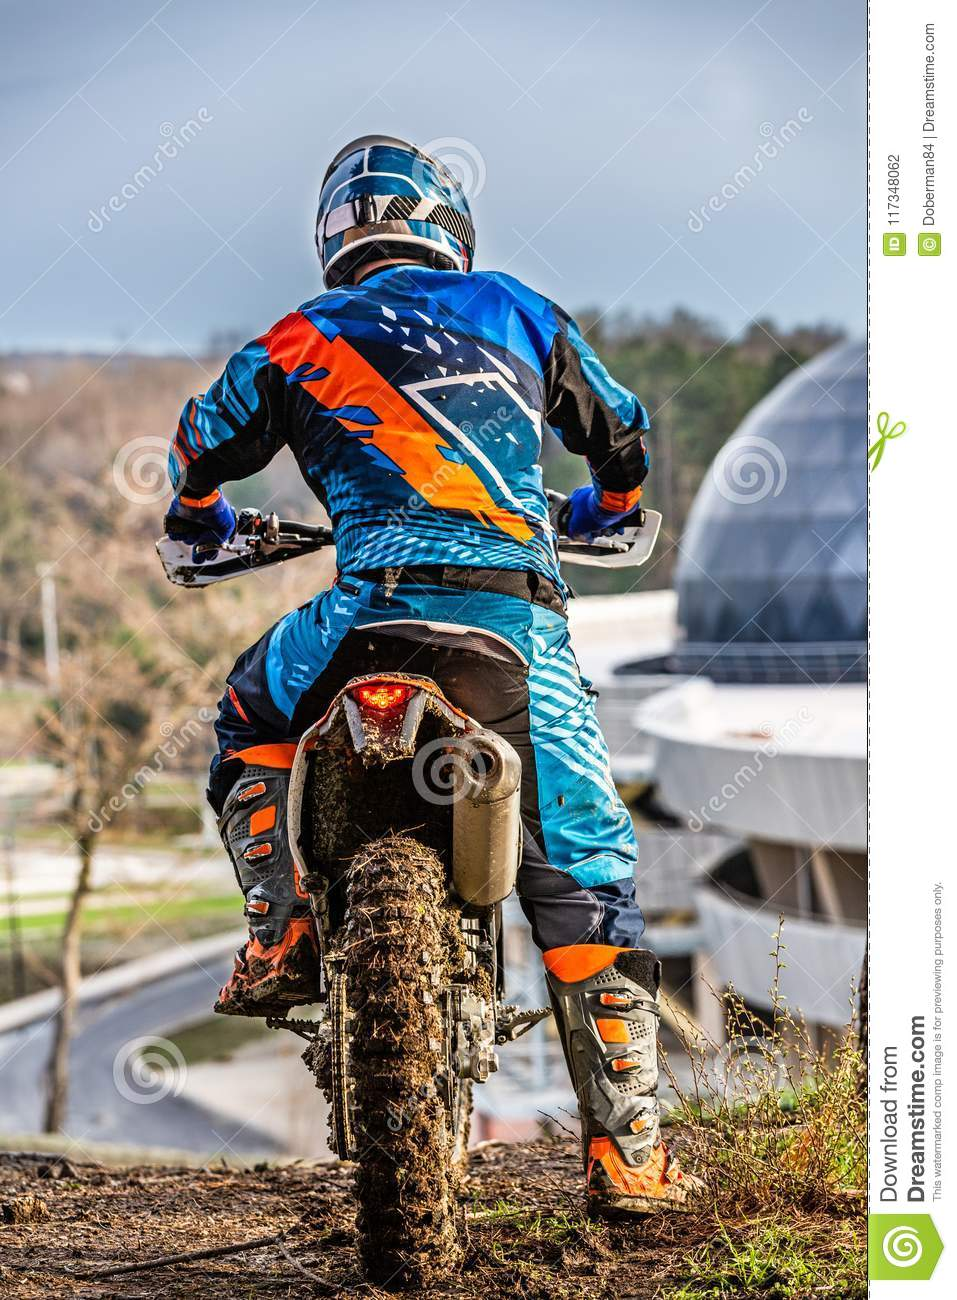 Dirty Motocross Racer Riding On Mud Stock Photo - Image of